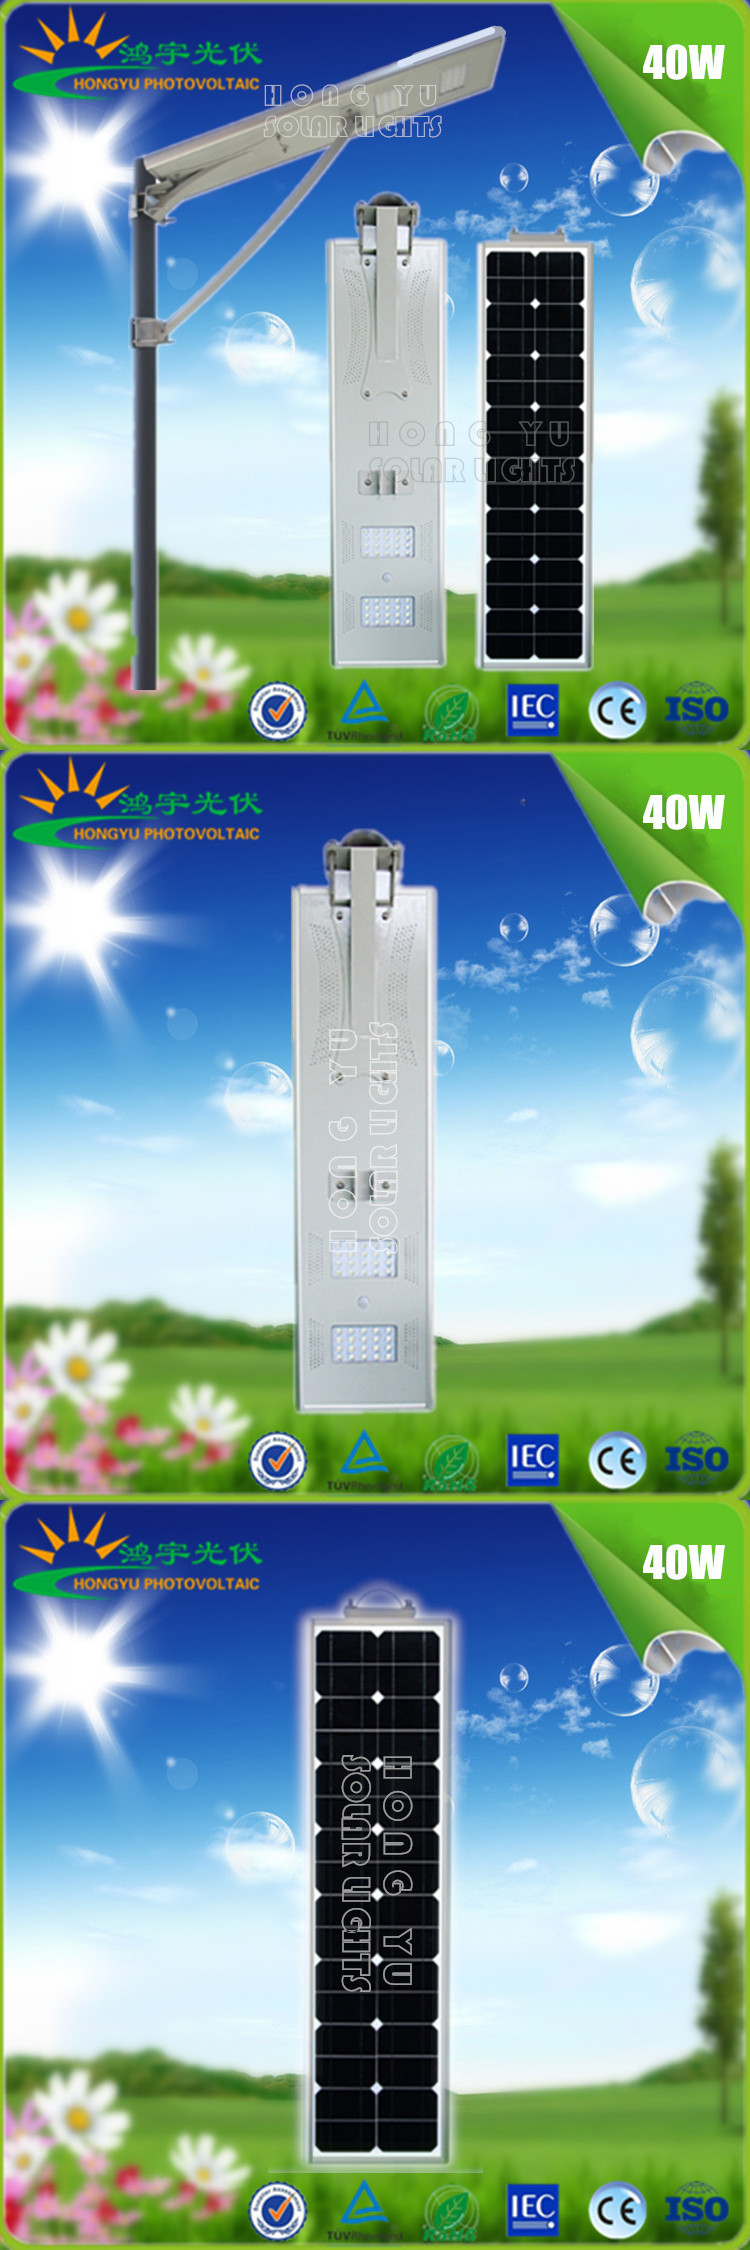 40W Solar LED street light with high quality competitive price with motion sensor